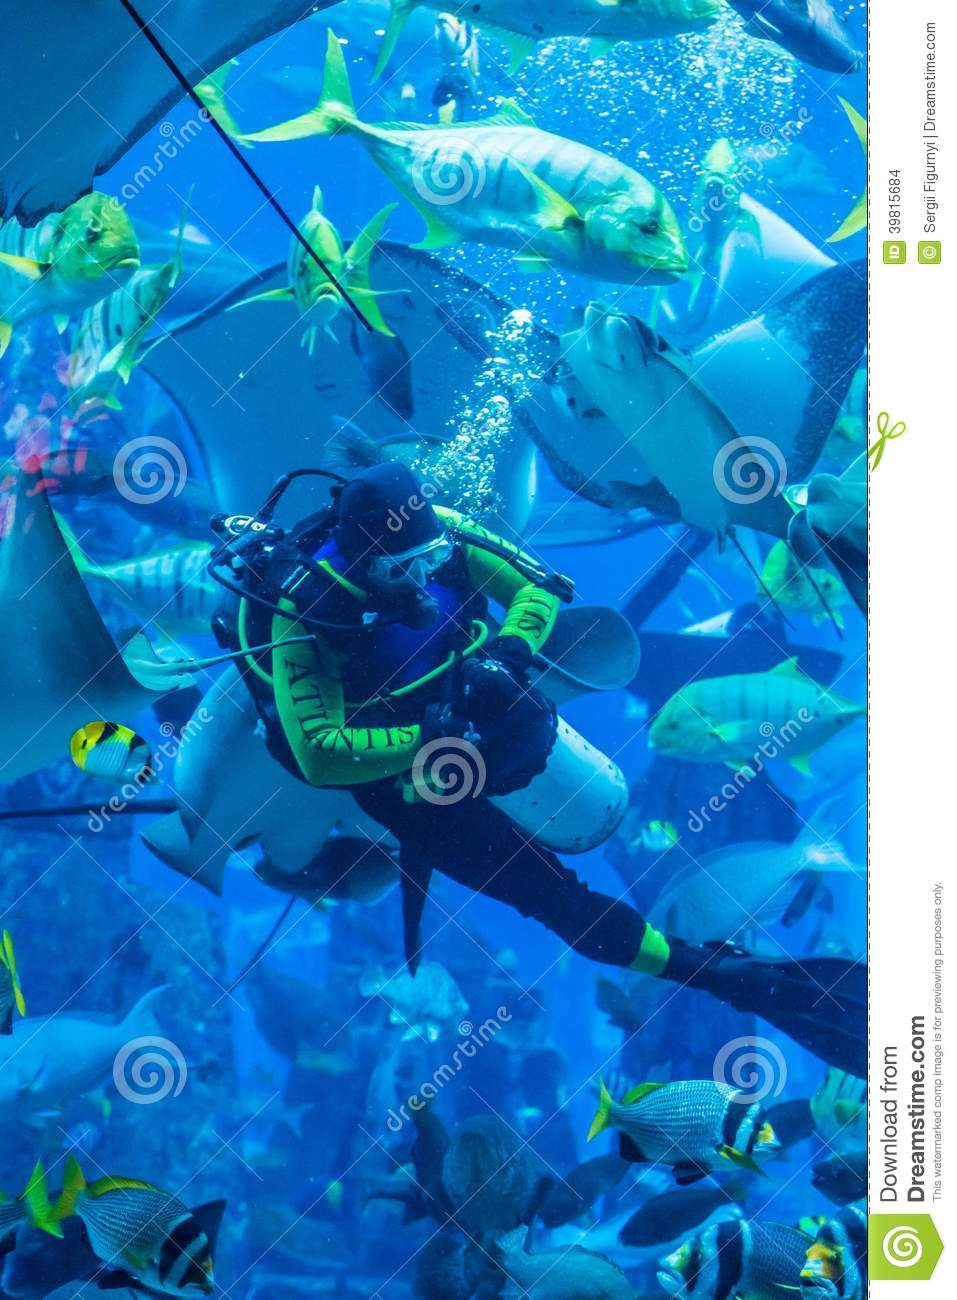 Fish aquarium in uae - Huge Aquarium In Dubai Diver Feeding Fishes Editorial Stock Image